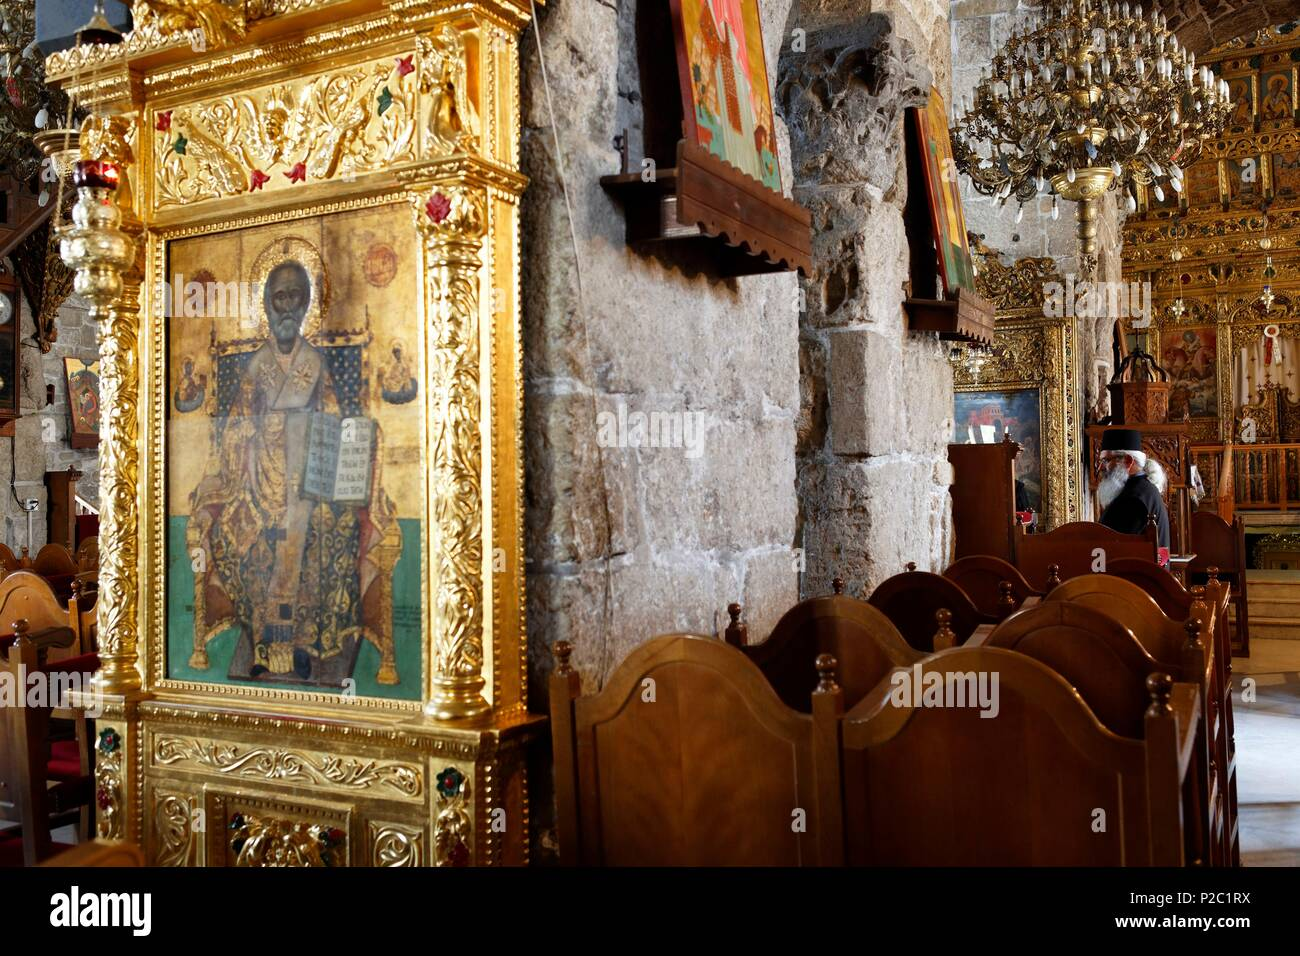 Cyprus, Larnaka, the church of St. Lazarus Larnaca dates from the end of the 9th century - Stock Image